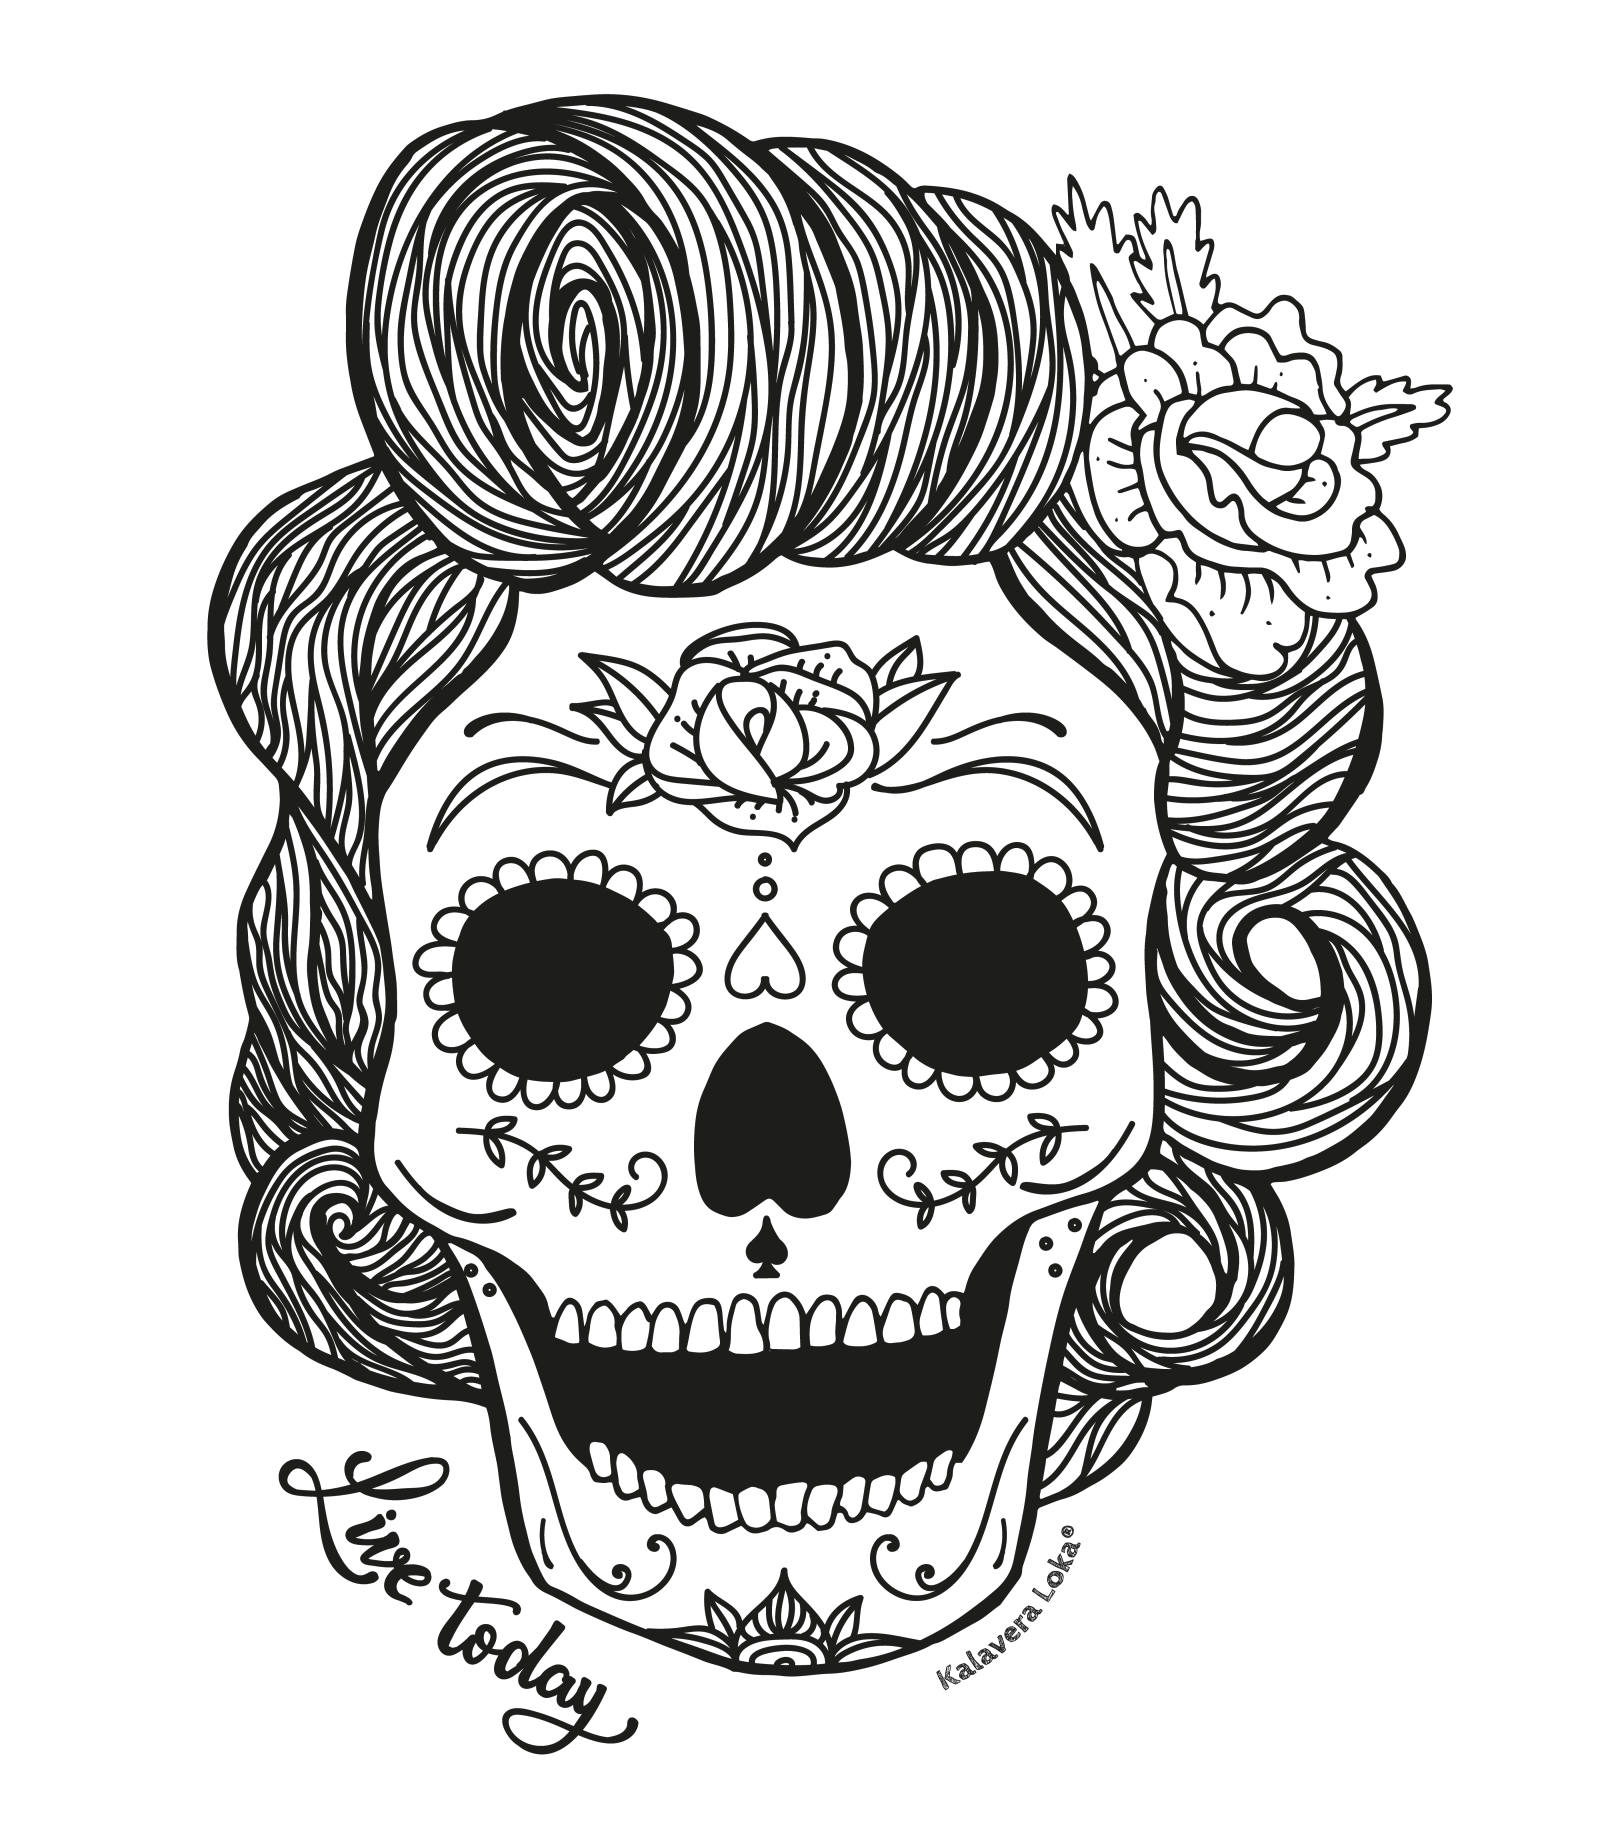 Charra drawing tattooed woman. Mexican girly skull pictures